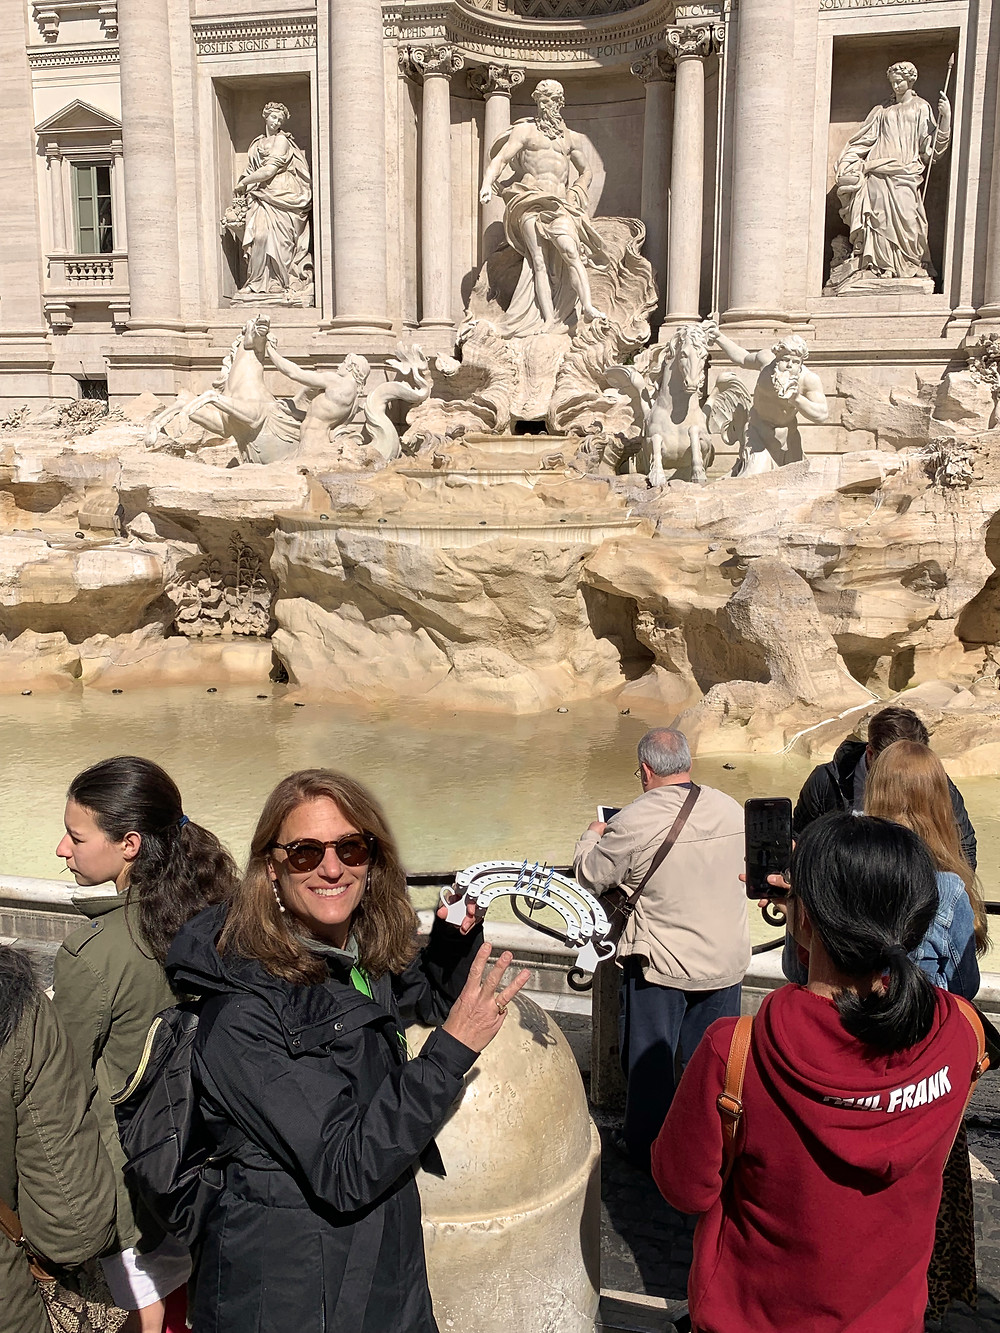 Carey Ide, Co-founder Celebration Stadium, at the Trevi Fountain in Rome.